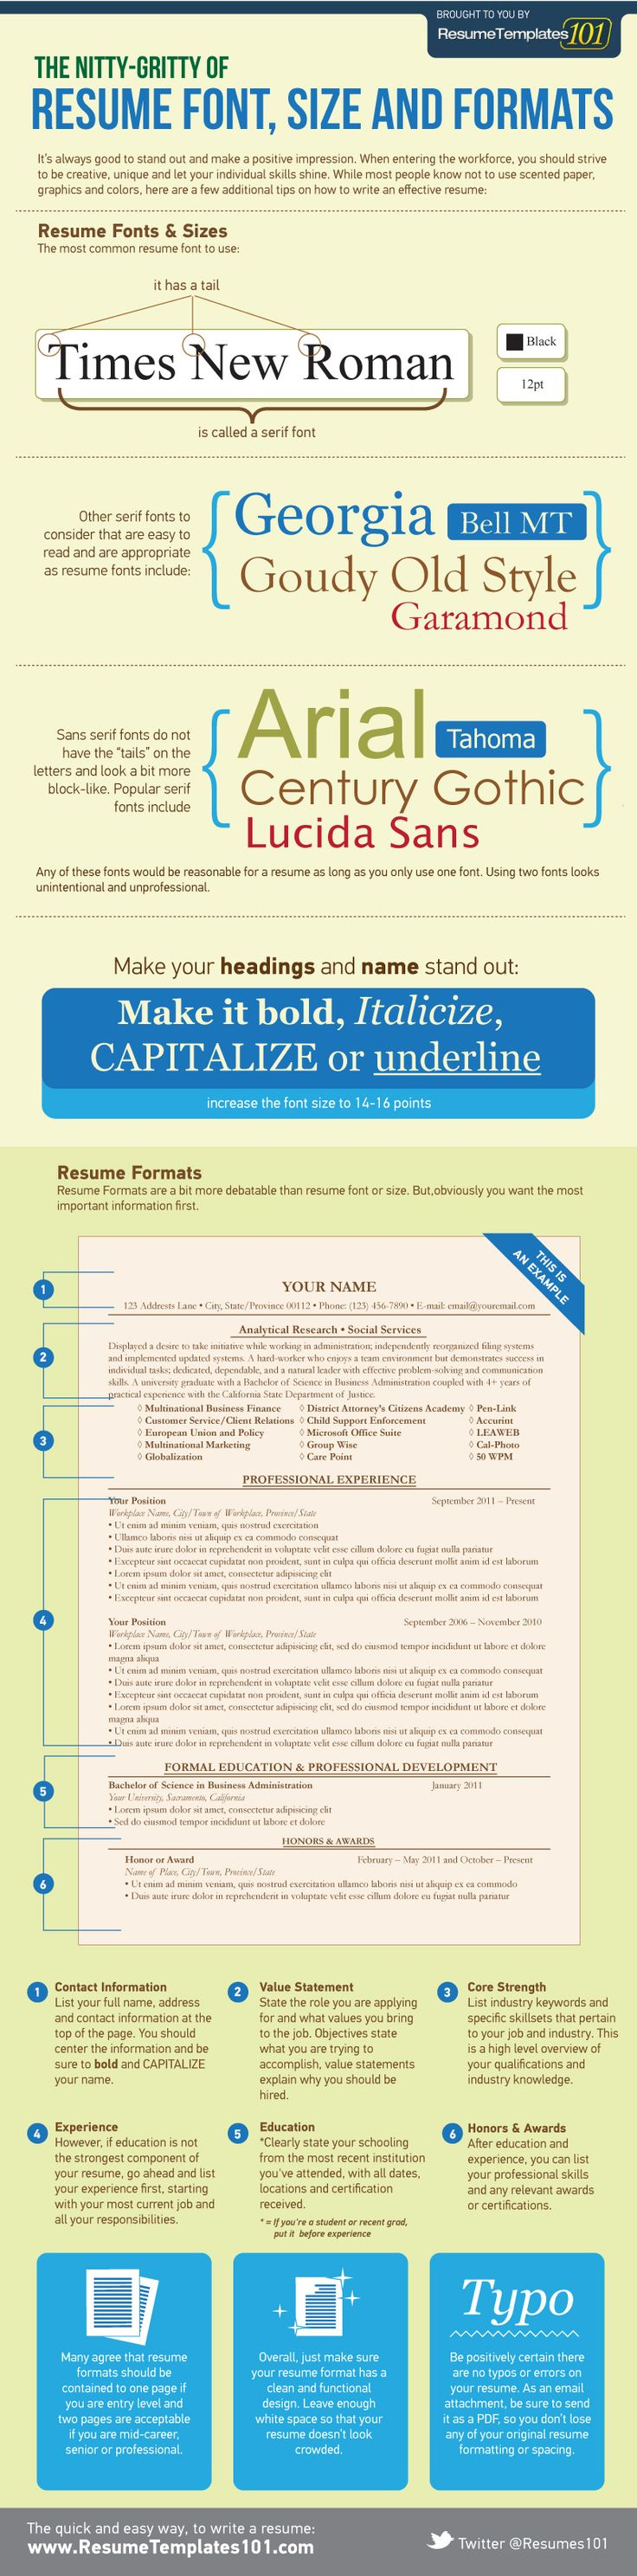 Infographic: Resume Font Guidelines | It's always good to stand out and make a positive first impression.    When entering the workforce, you should strive to be creative and unique, and let your individual skills shine.    While most people know not to use scented paper, graphics, and colors on their resume, not everyone thinks about the type of font.    Here's a neat infographic that does a great job showcasing proper resume font guidelines.